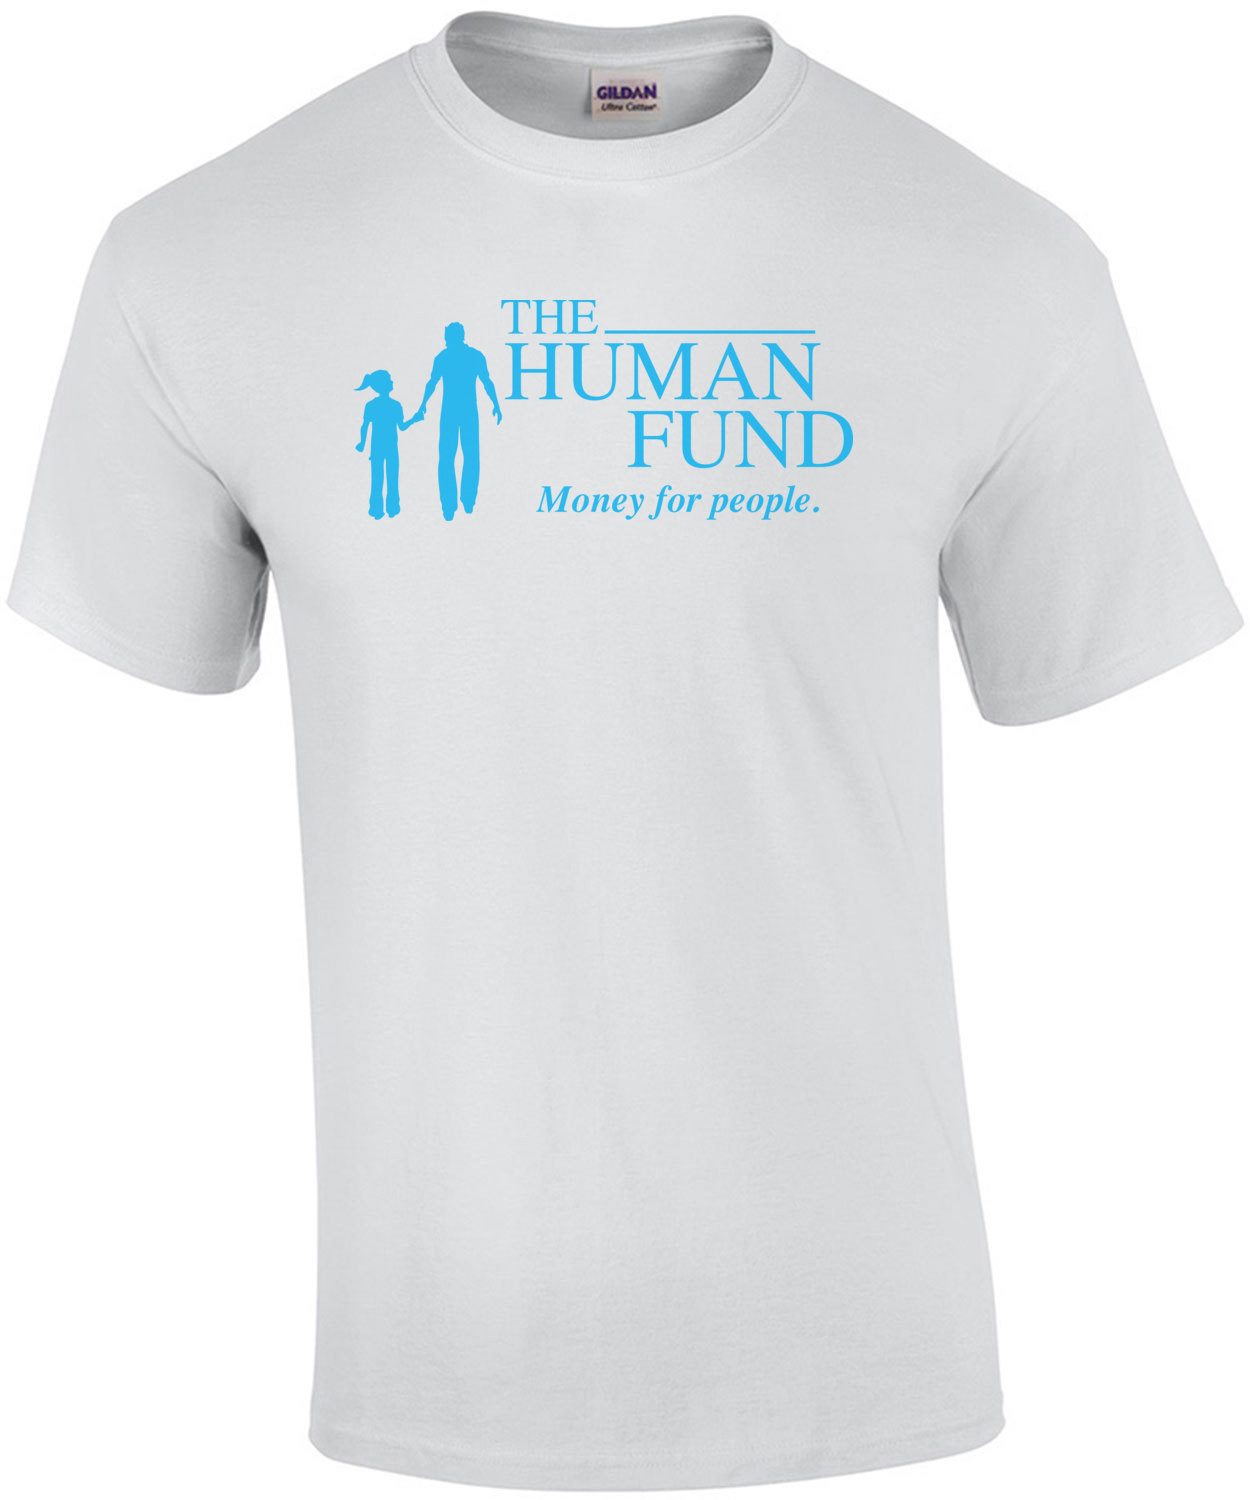 The Human Fund Money For People T-shirt